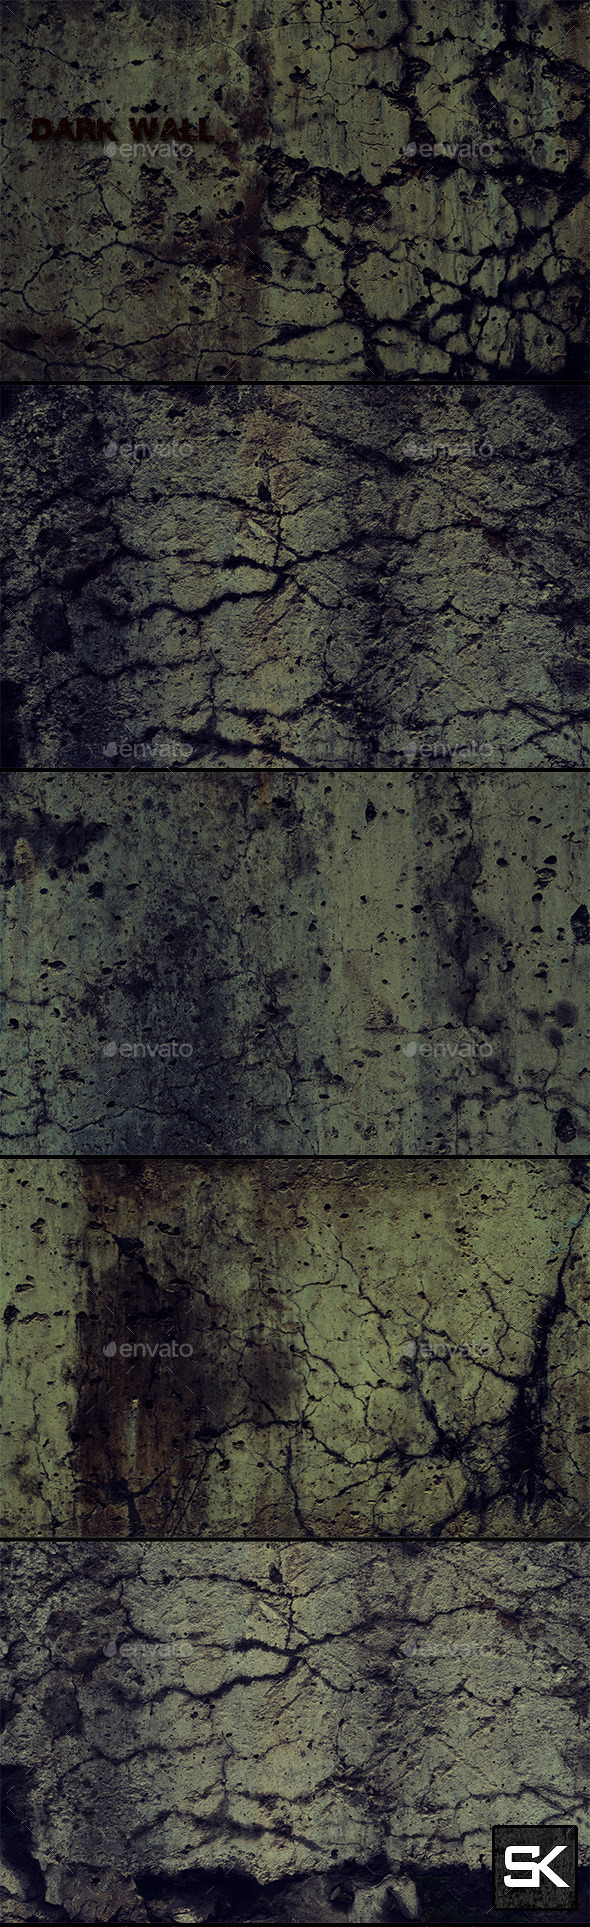 Wall 2 - Industrial / Grunge Textures